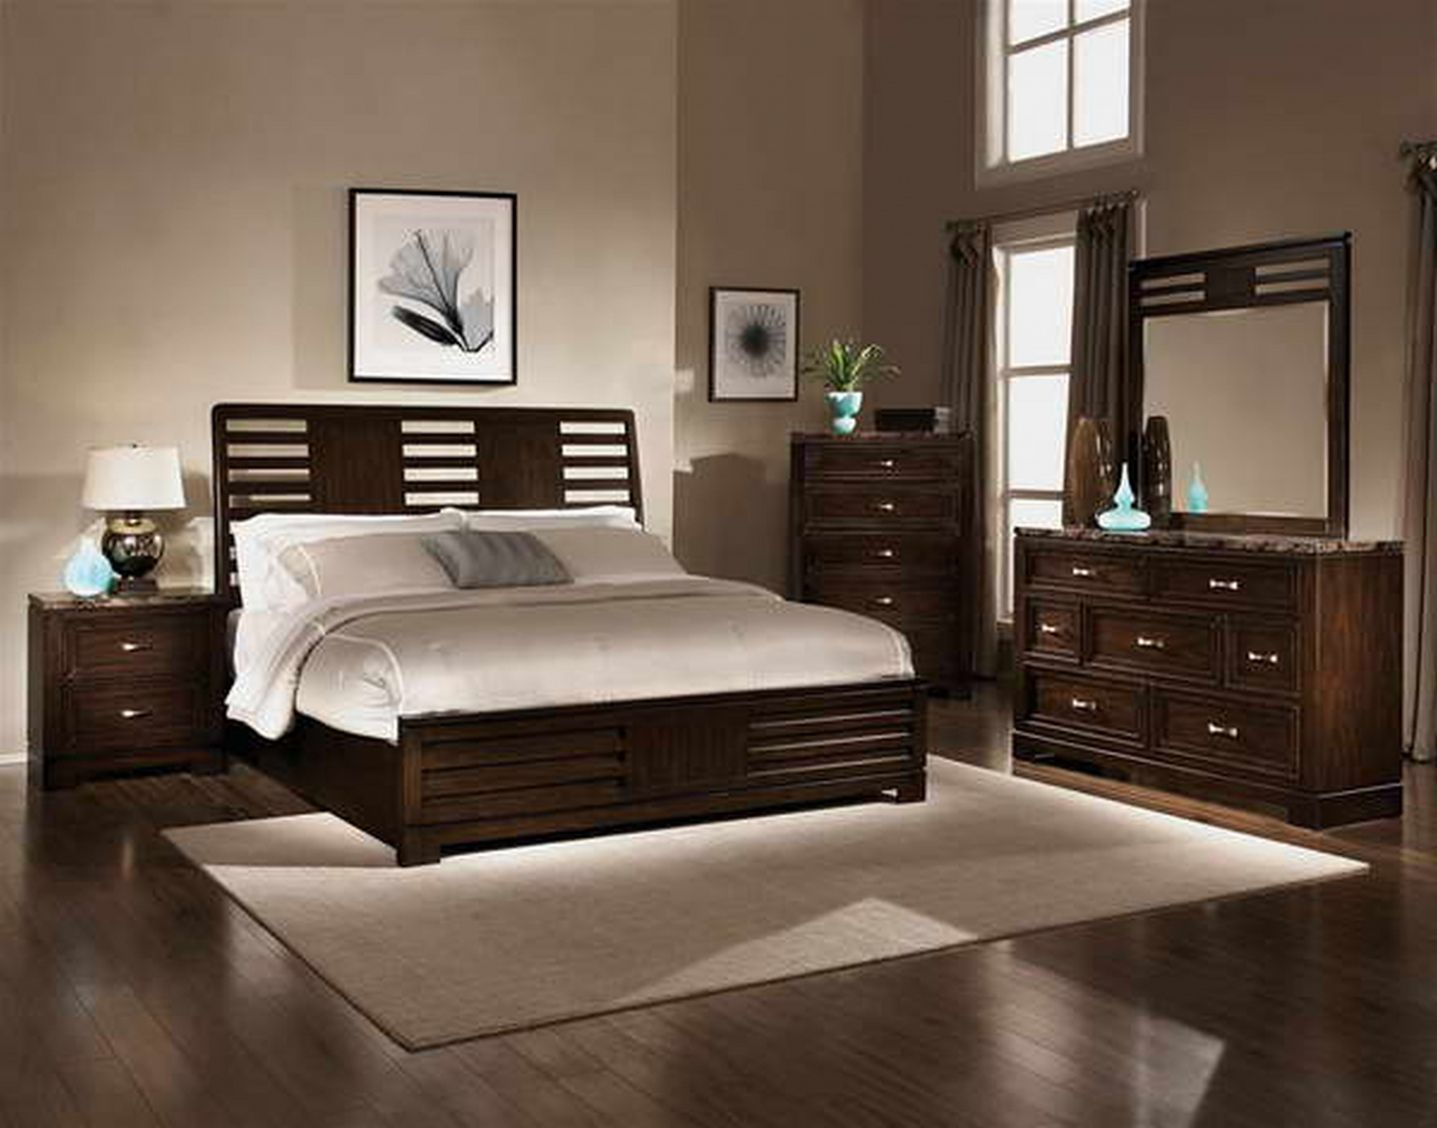 Colored bedroom furniture wall art ideas for bedroom check more at